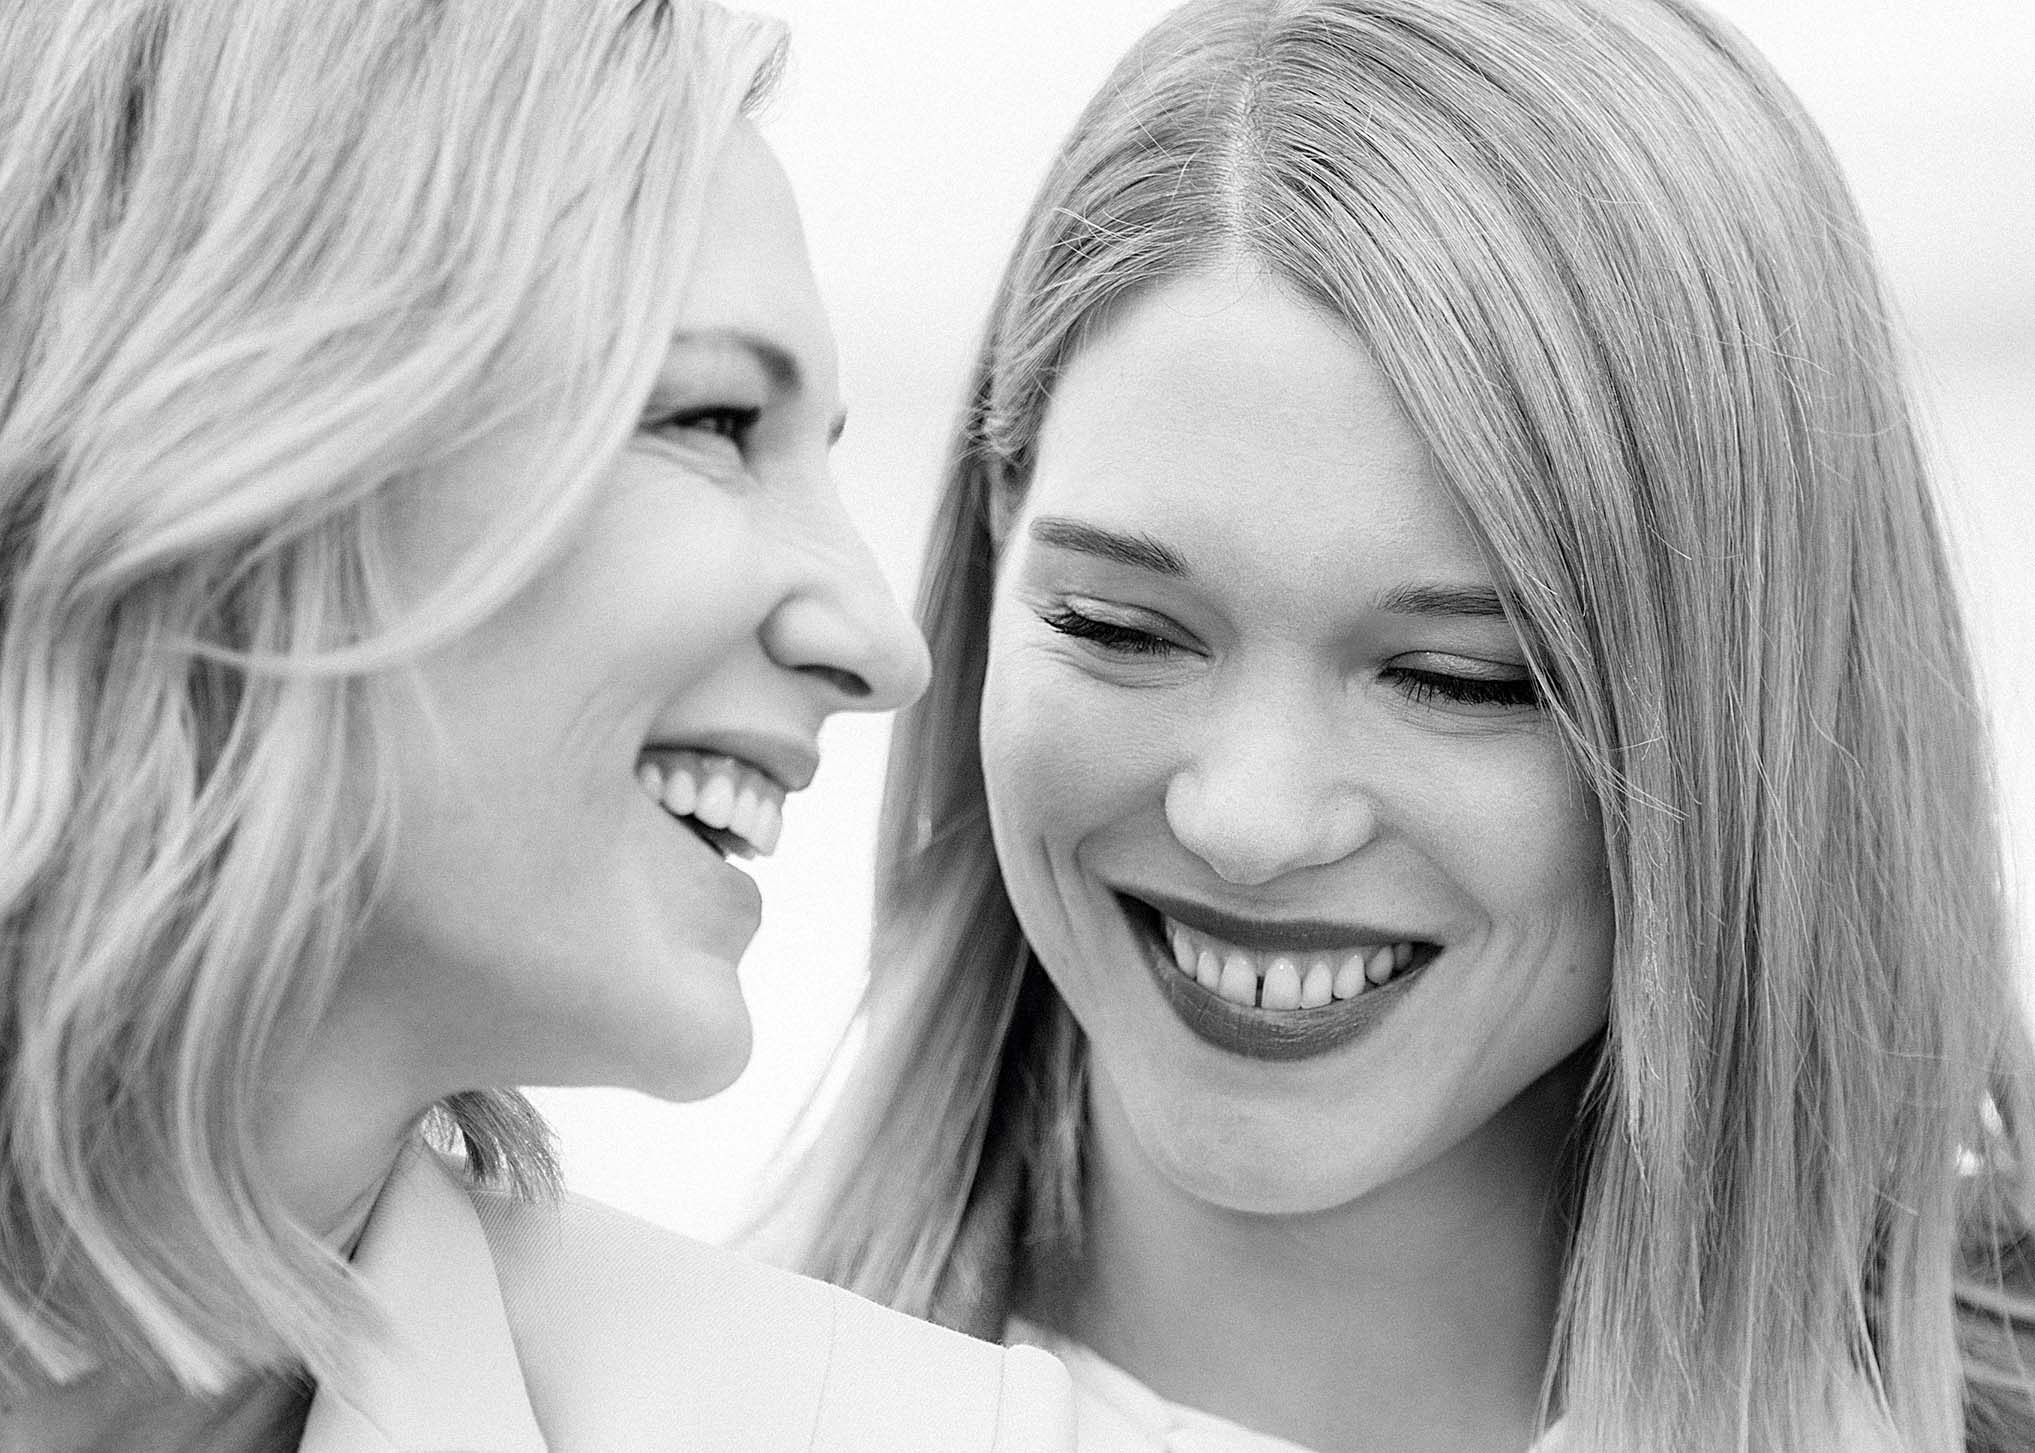 CANNES, FRANCE - MAY 08: (EDITORS NOTE: Image has been digitally retouched) (L-R) Jury president Cate Blanchett and jury member Lea Seydoux attend the photocall for Jury during the 71st annual Cannes Film Festival at Palais des Festivals on May 8, 2018 in Cannes, France.  (Photo by Gareth Cattermole/Getty Images)